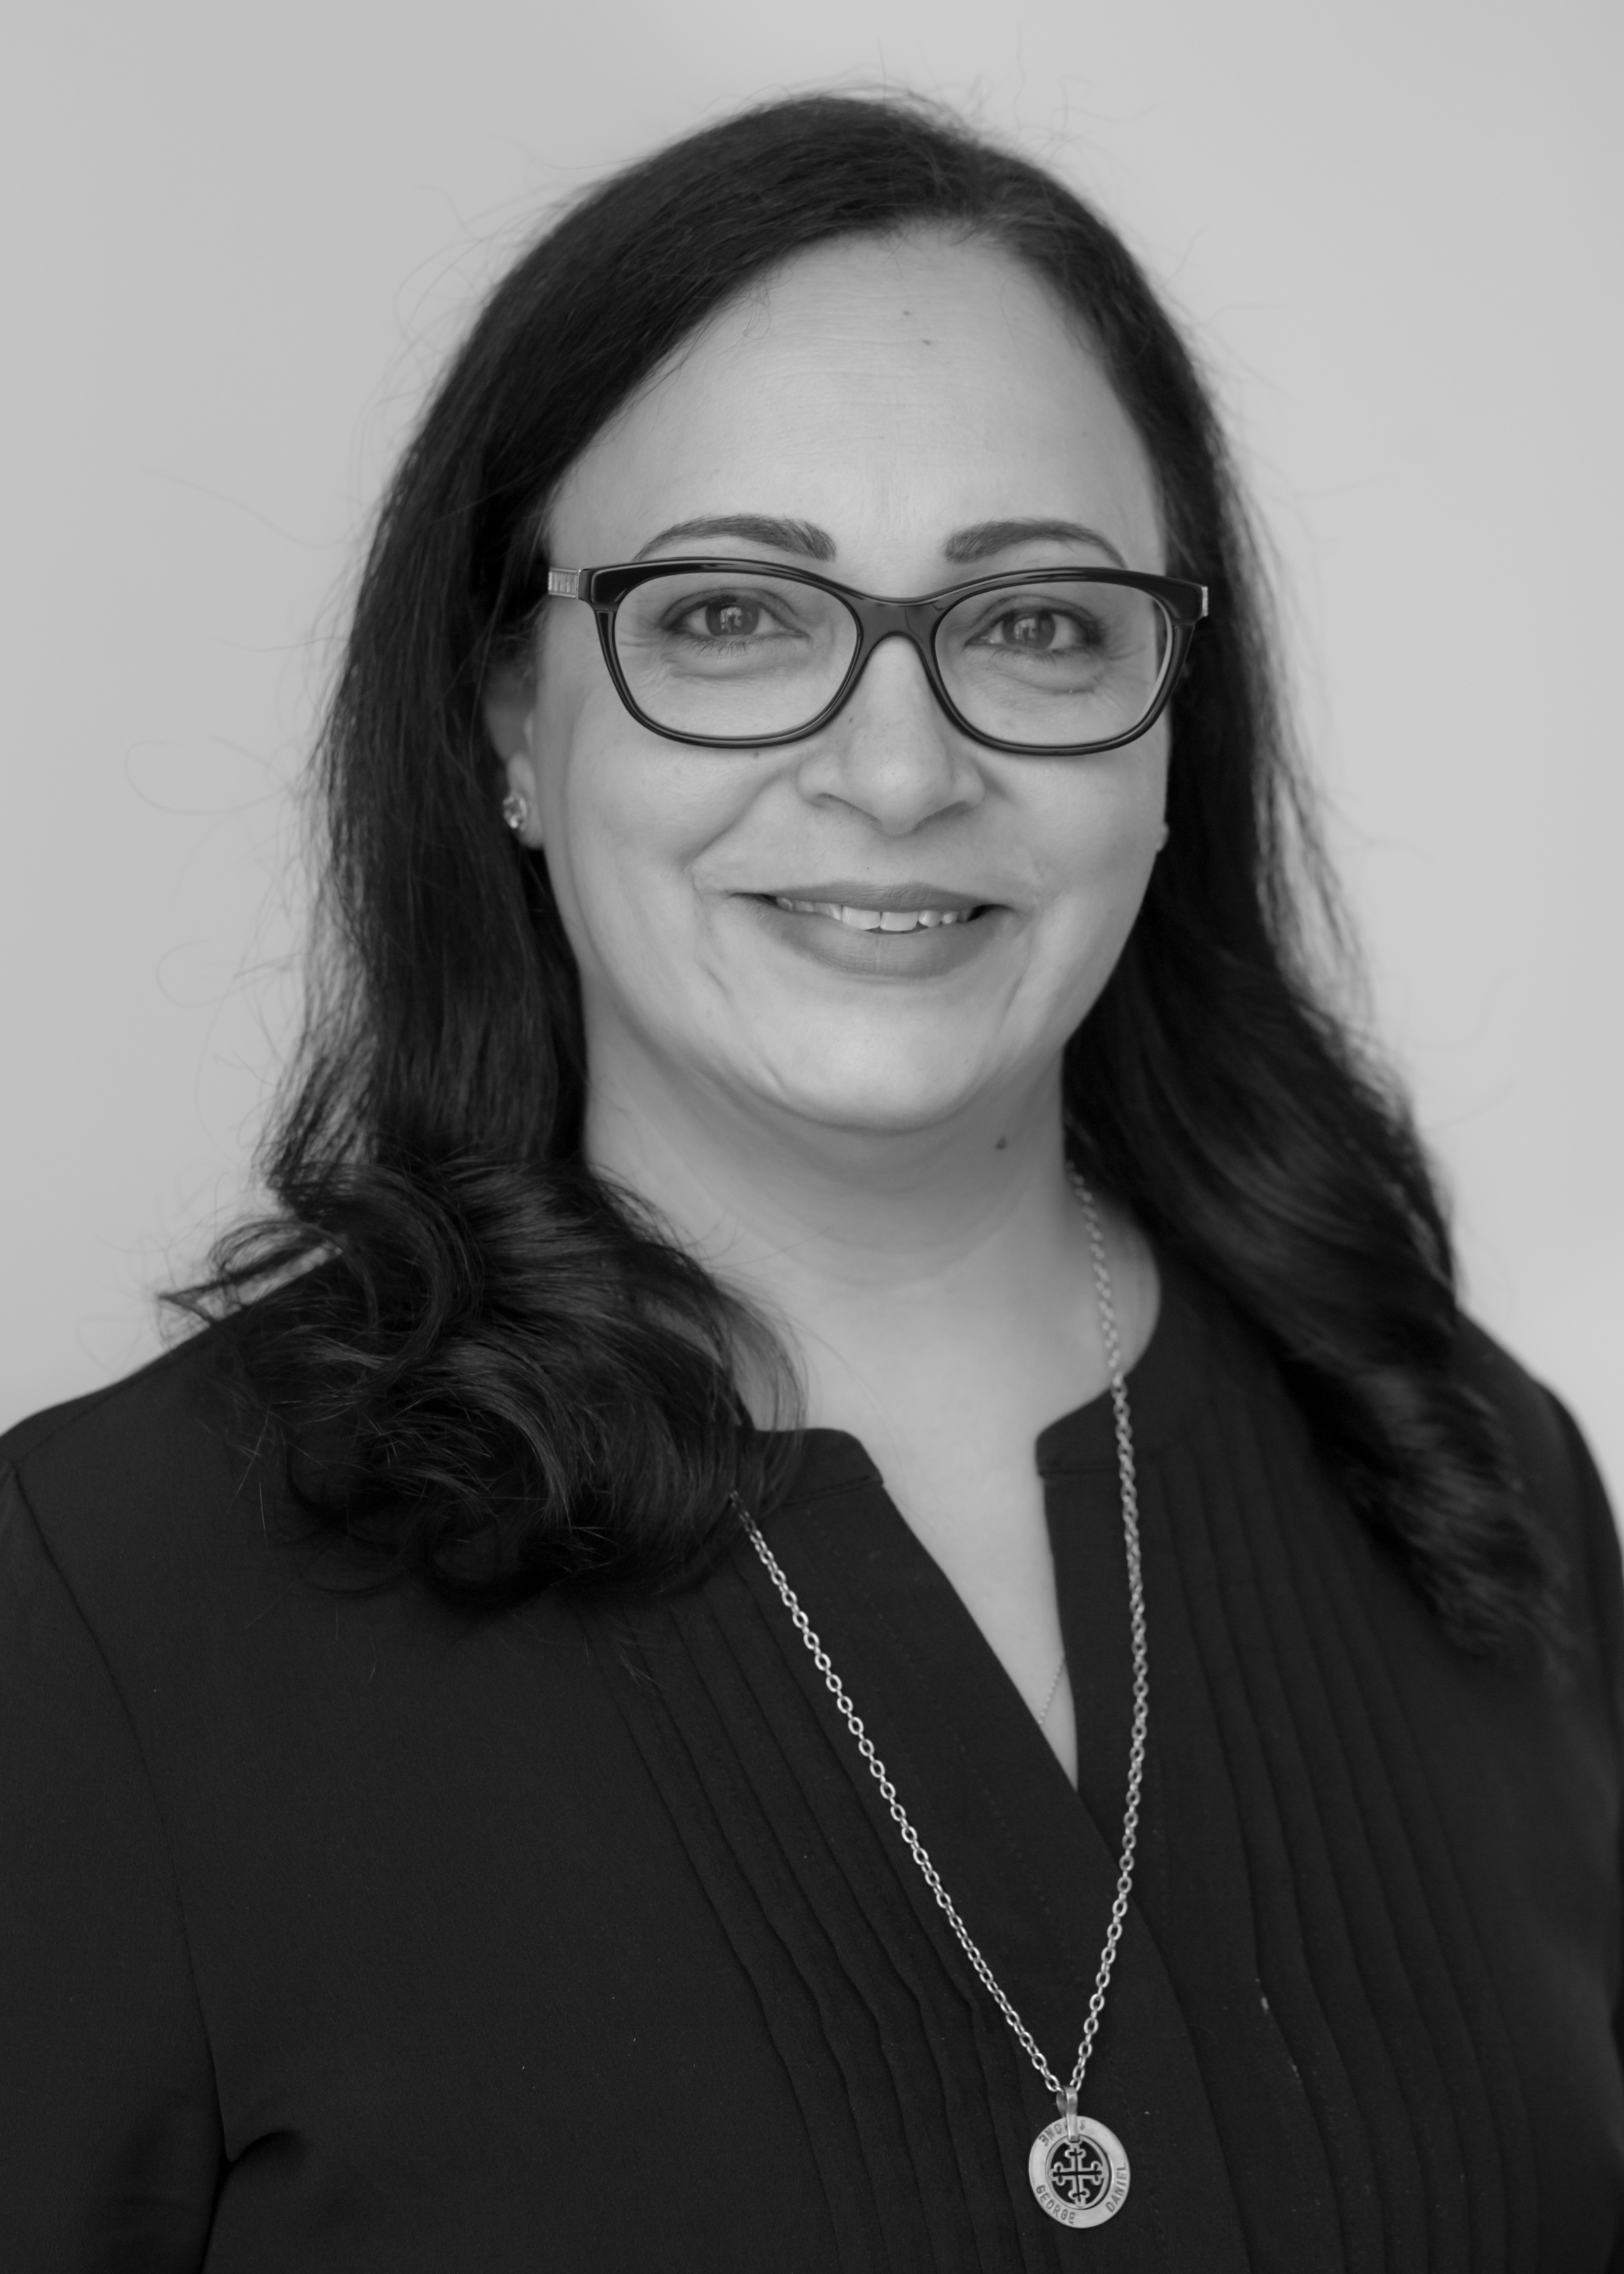 A black and white image of Amy Mikhael, Senior Paraplanner at Ethical Investment Services.